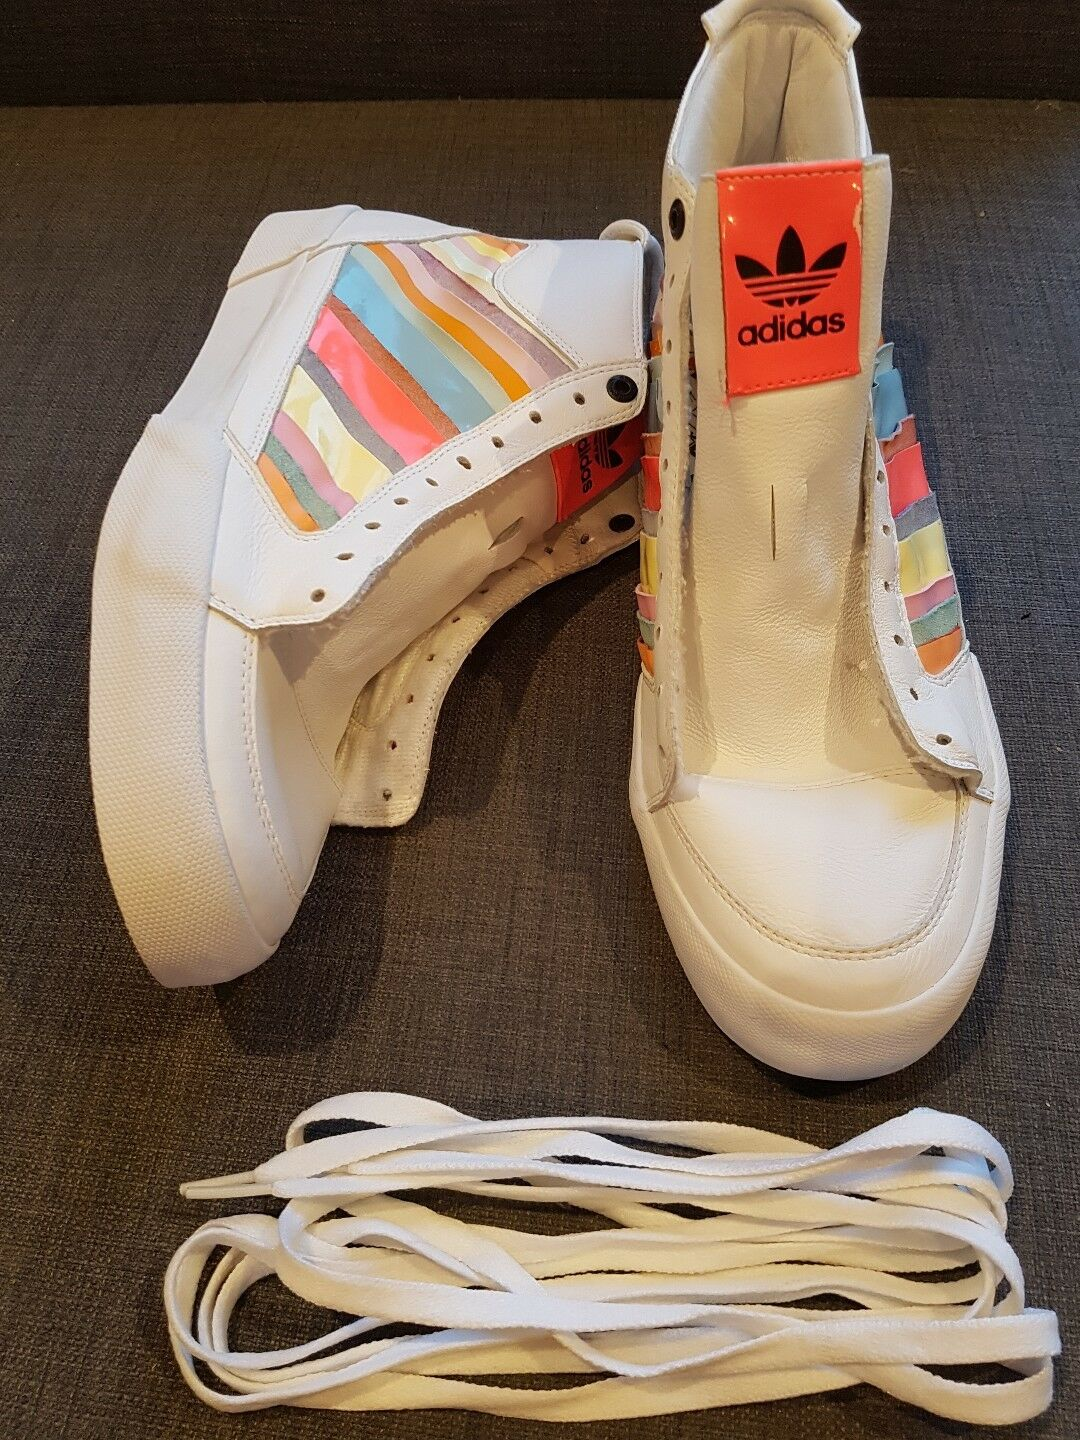 ADIDAS Superskate Consortium 026306 Rainbow Trainers Sneakers UK10 - Very Rare